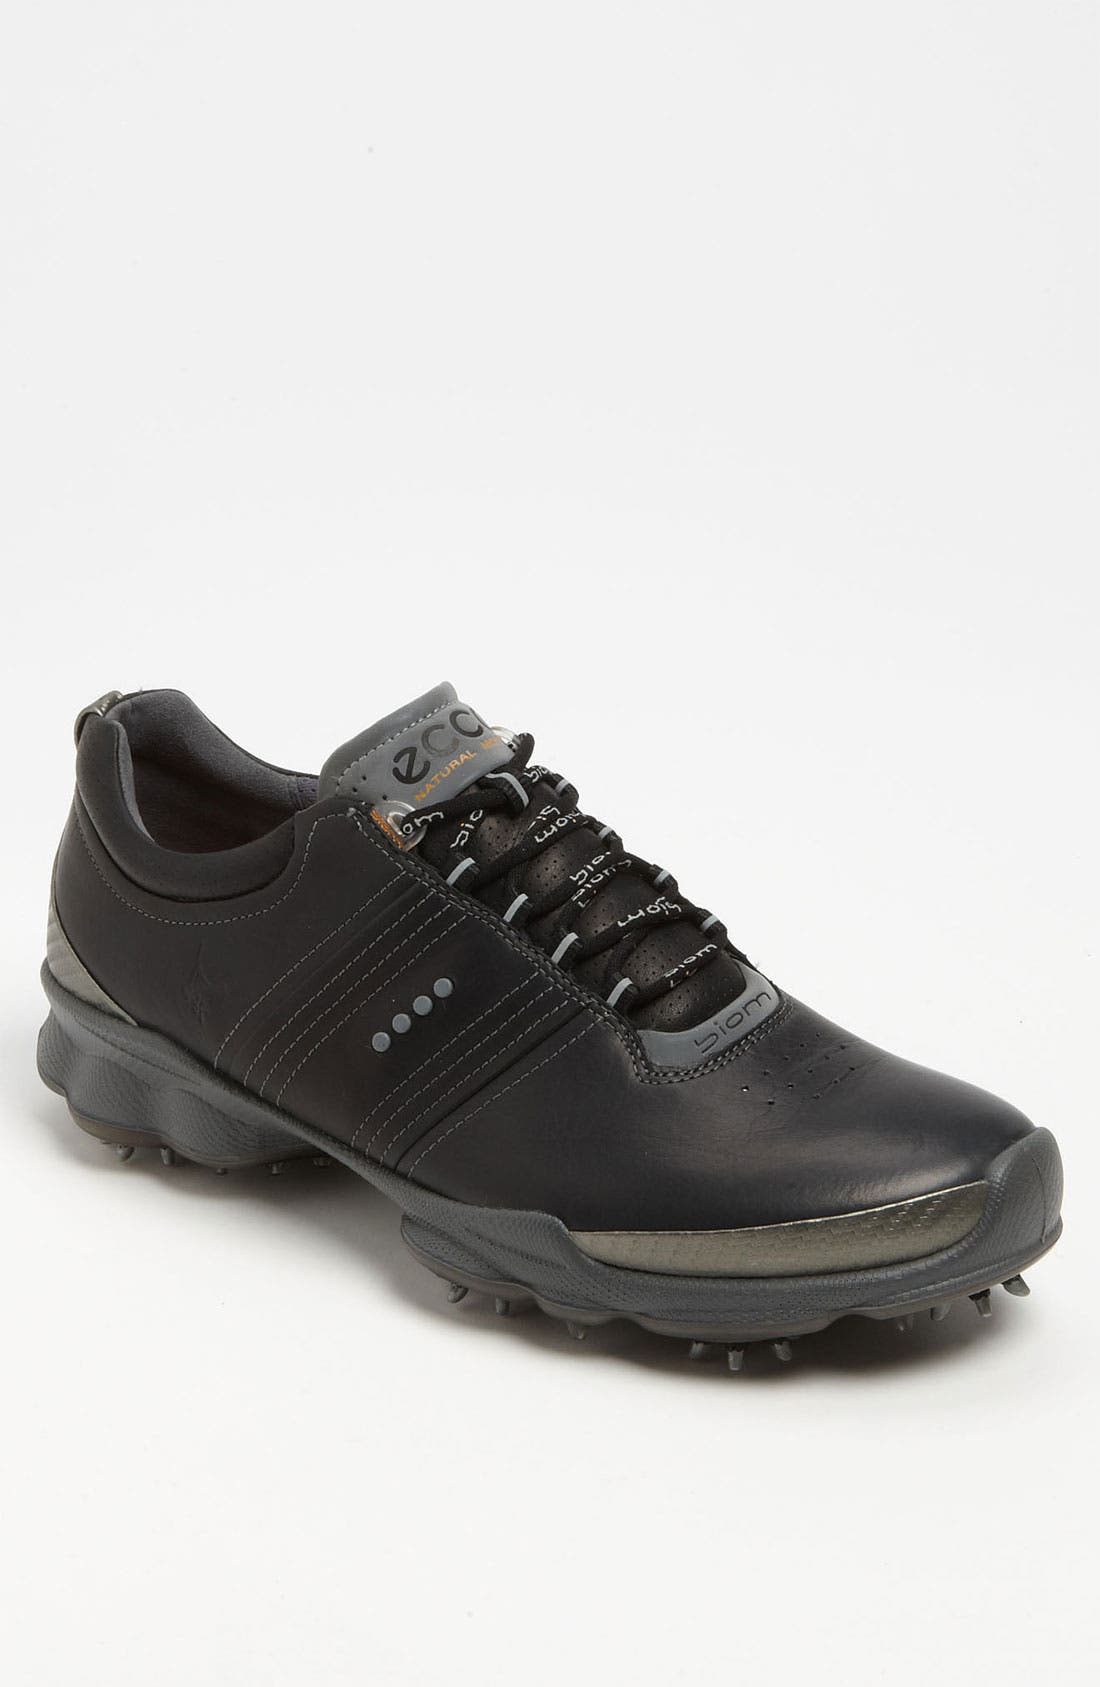 Alternate Image 1 Selected - ECCO 'Biom' Hydromax Golf Shoe (Men)